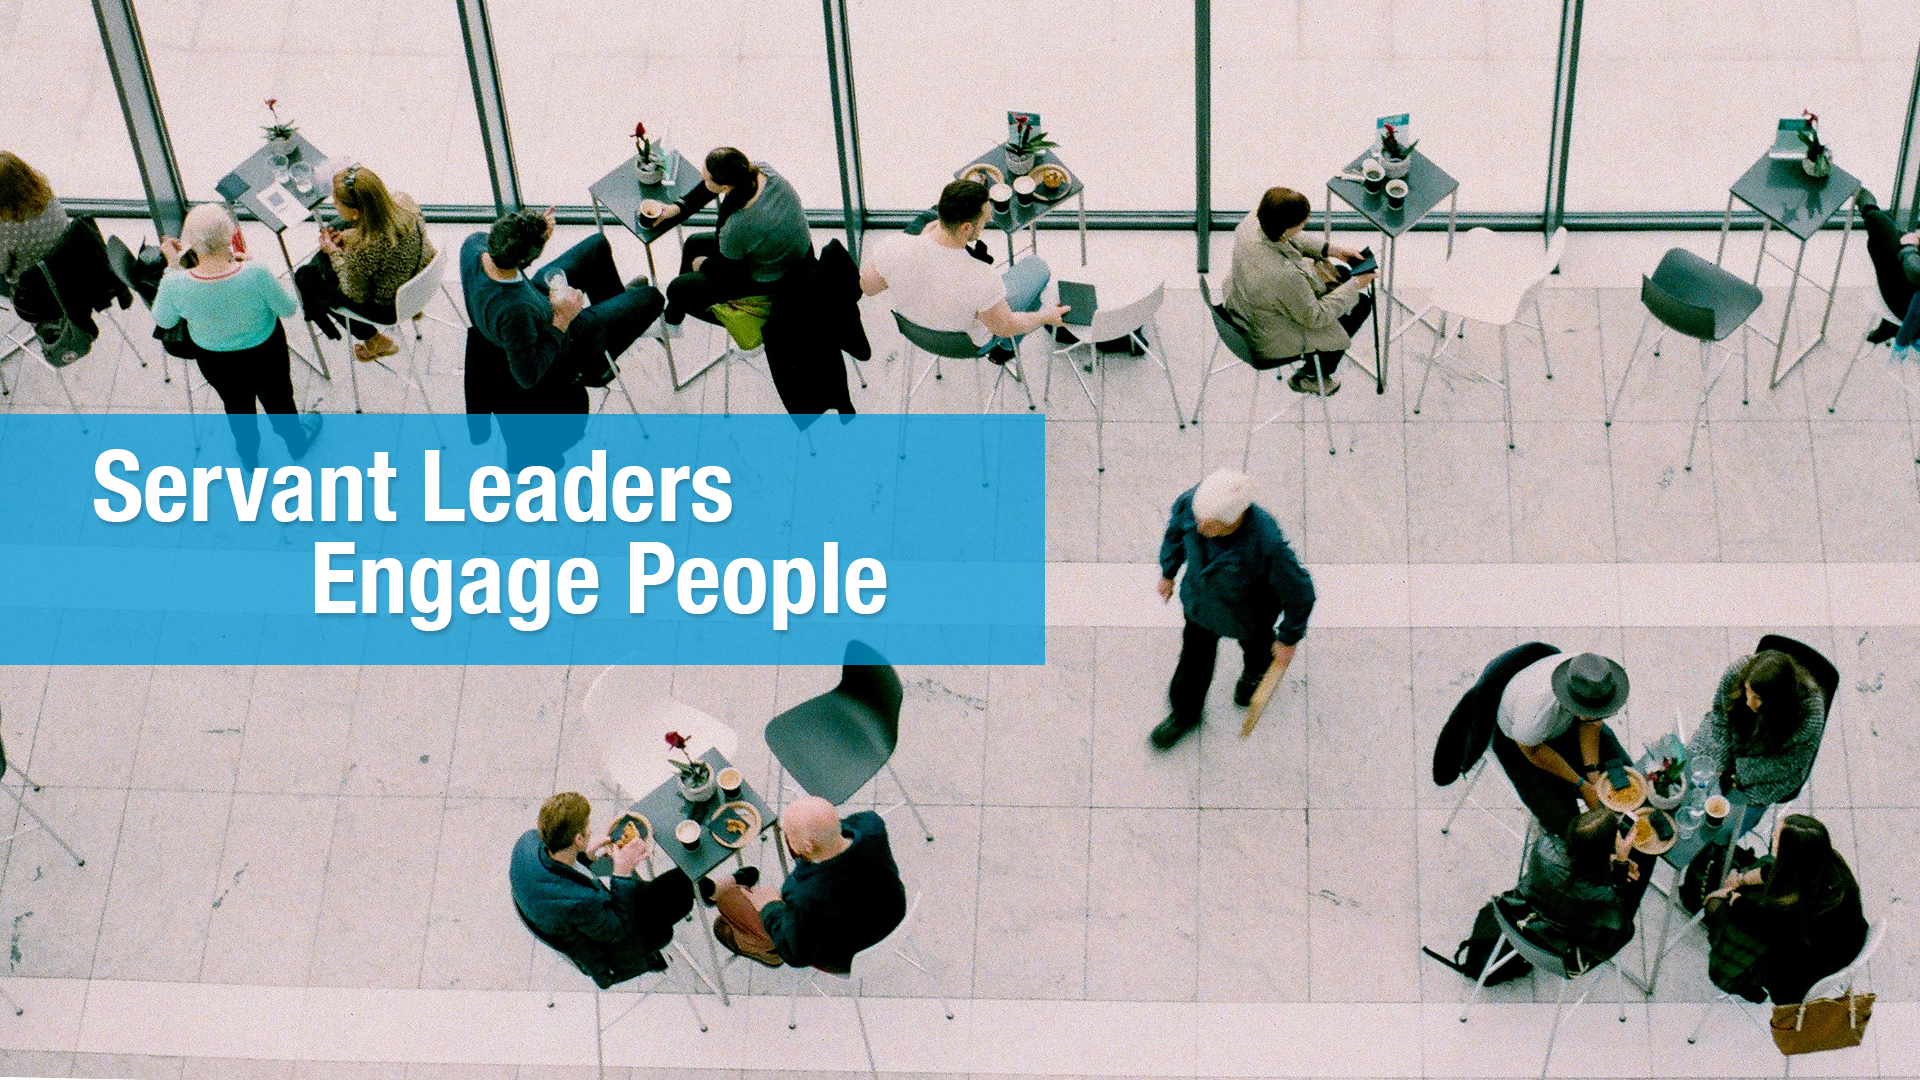 SL engage people 1920x1080.jpg